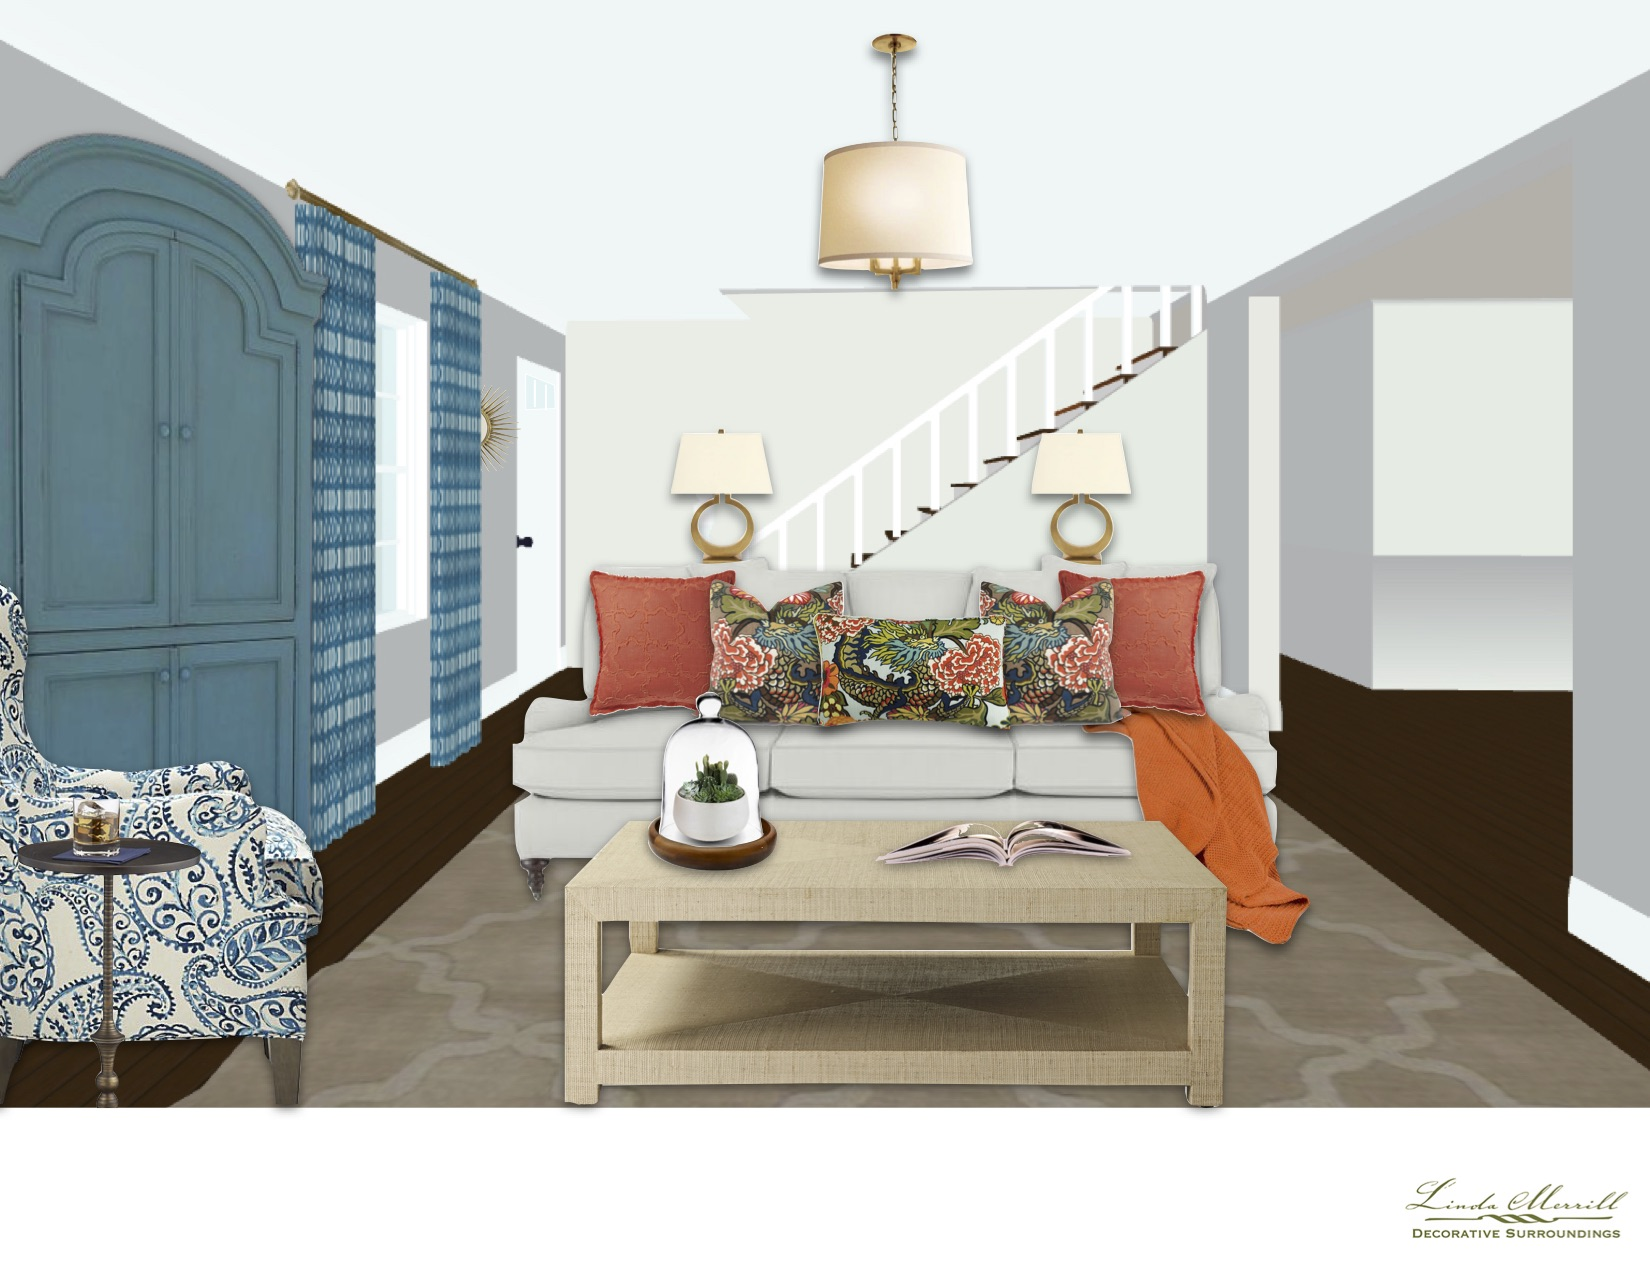 Keeping Up To Date With Virtual Design Aka E Decorating Services Linda Merrill